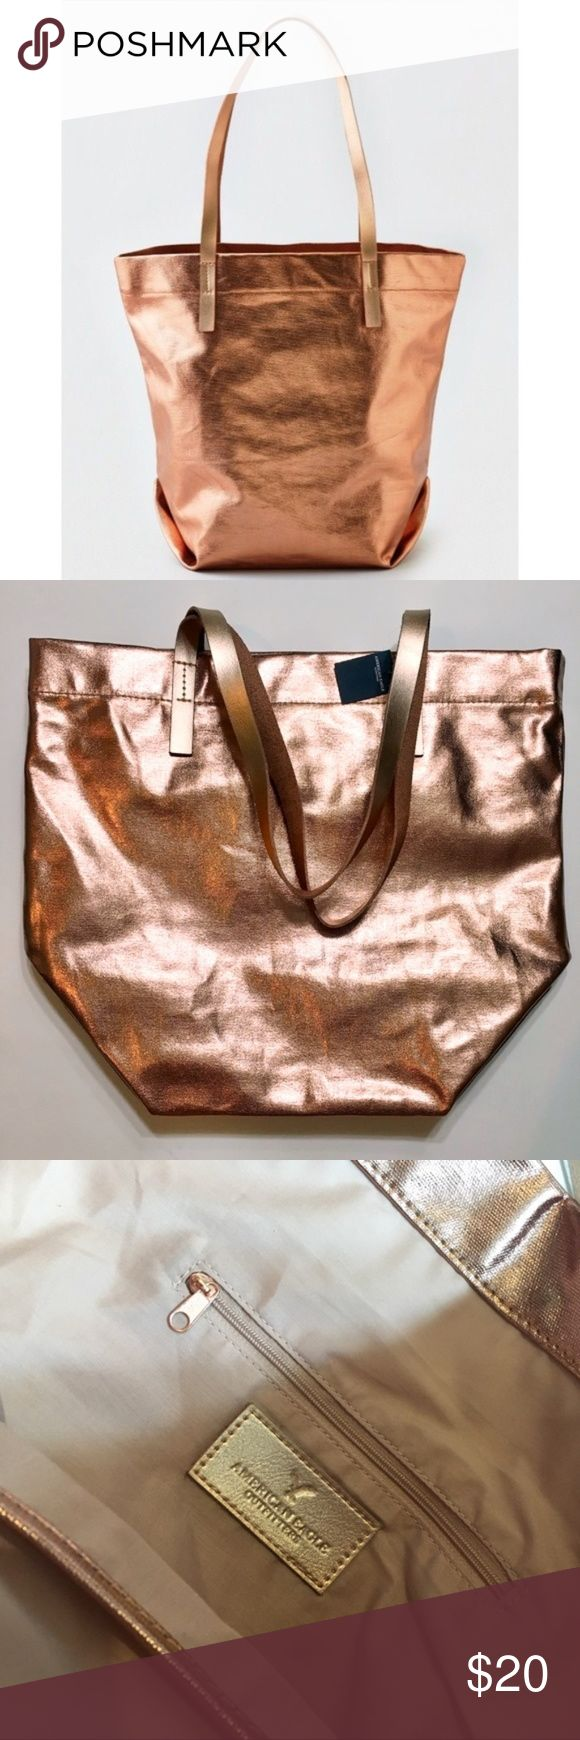 """AEO Metallic Shiny Canvas Tote Rose Gold NWT NWT Rose Gold Metallic Canvas Tote from American Eagle Outfitters. Shoulder straps, 2 interior open pockets for cell phone and other goodies and 1 interior zip pocket. 100% cotton with shiny exterior. Perfect for school, overnight bag or just an everyday on the go tote. Dimensions are 15"""" x 18"""" x 7.5"""". American Eagle Outfitters Bags Totes"""